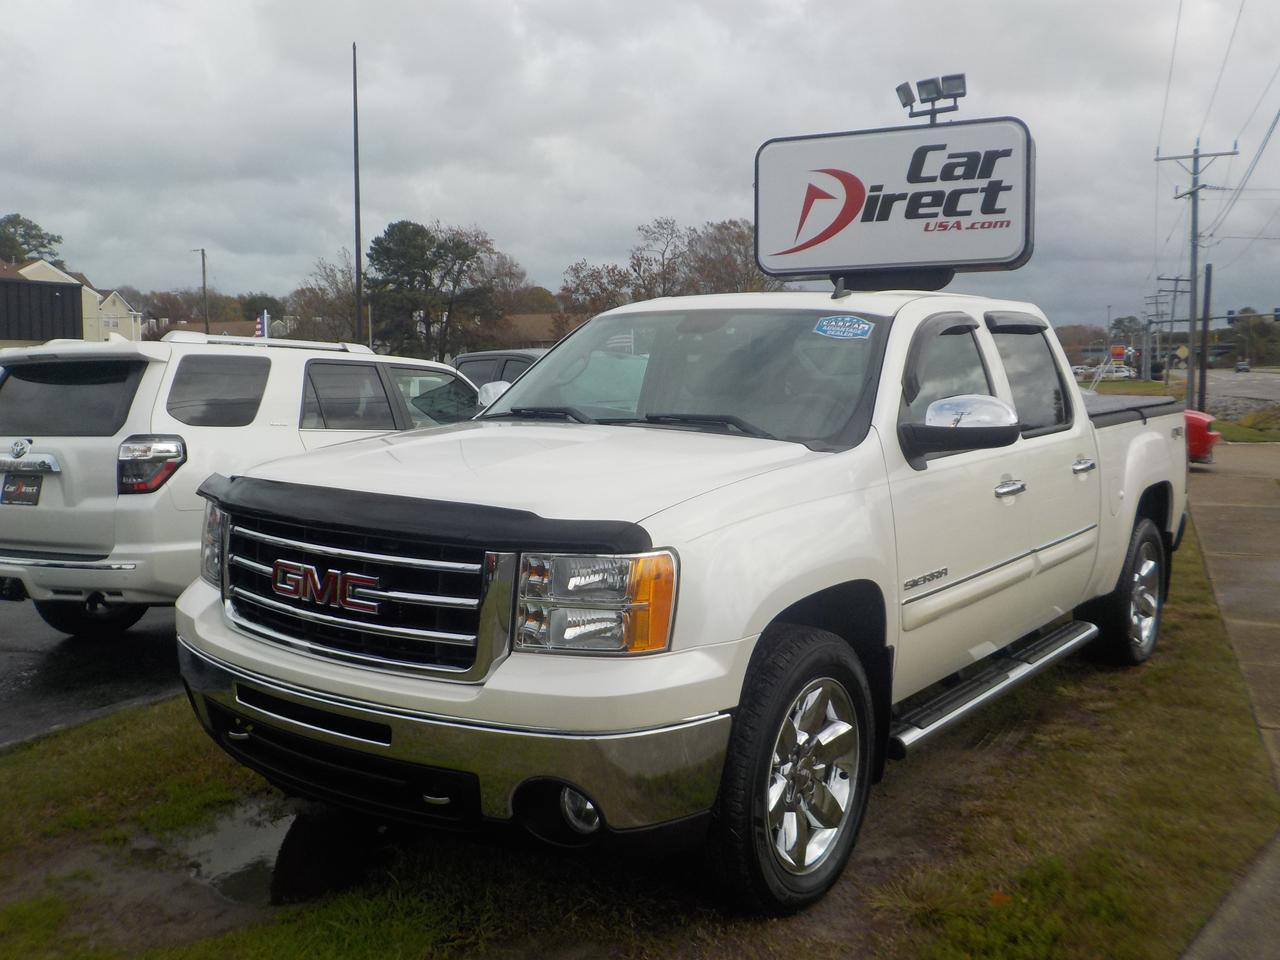 2012 GMC SIERRA 1500 CREW CAB SLT 4X4, SOFT TONNEAU COVER, BACKUP CAMERA, REMOTE START, SUNROOF, ONLY 56K MILES!,